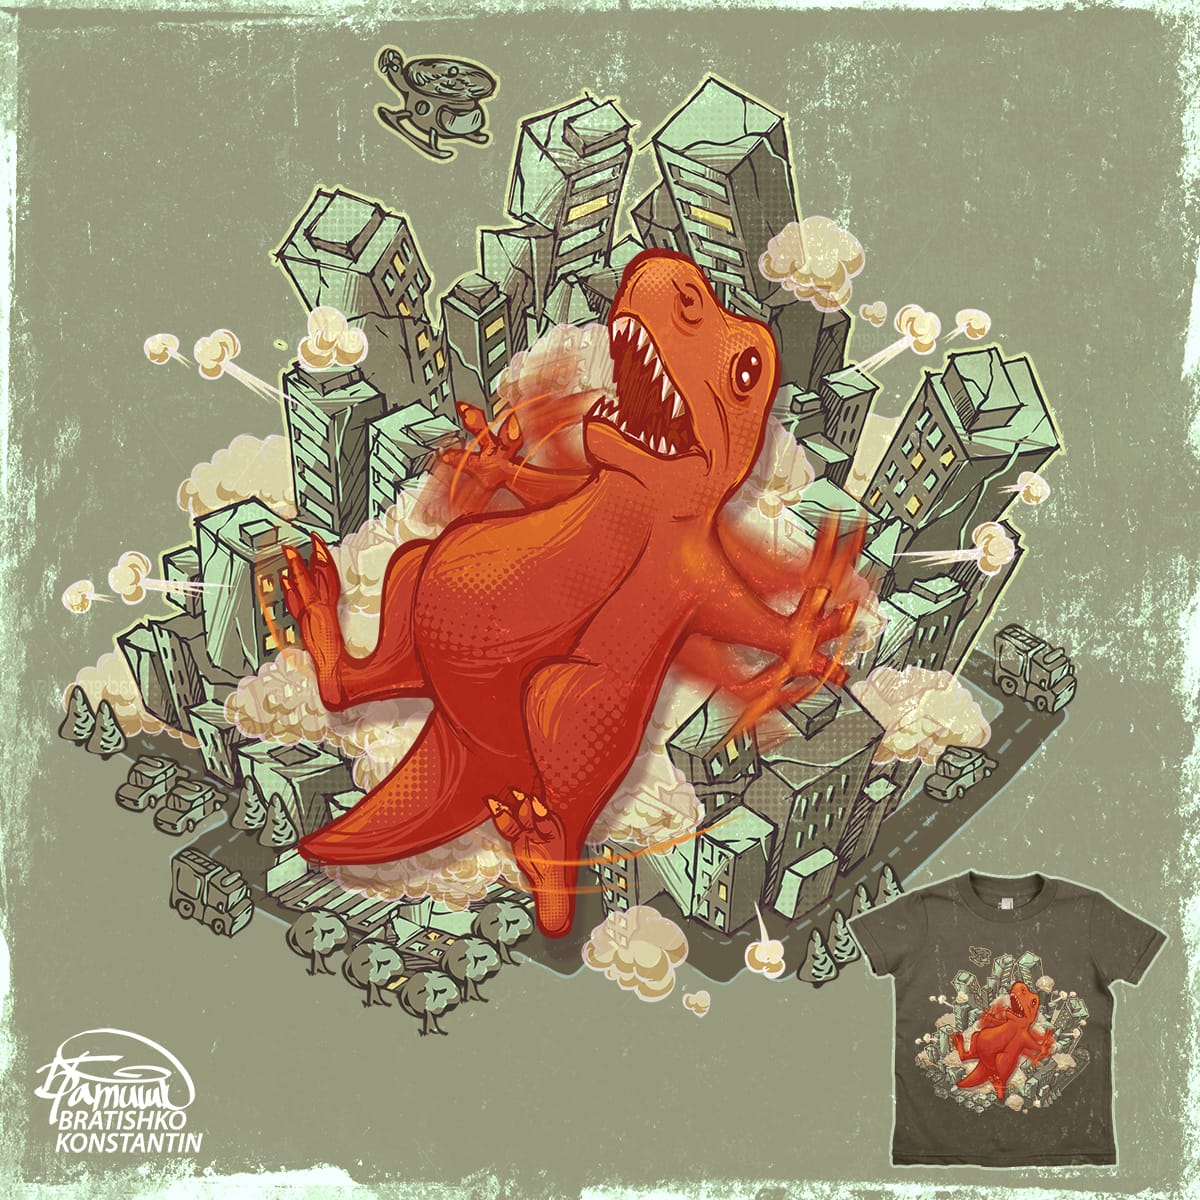 godzilla have fun  by KONSTANTIN BRATISHKO on Threadless